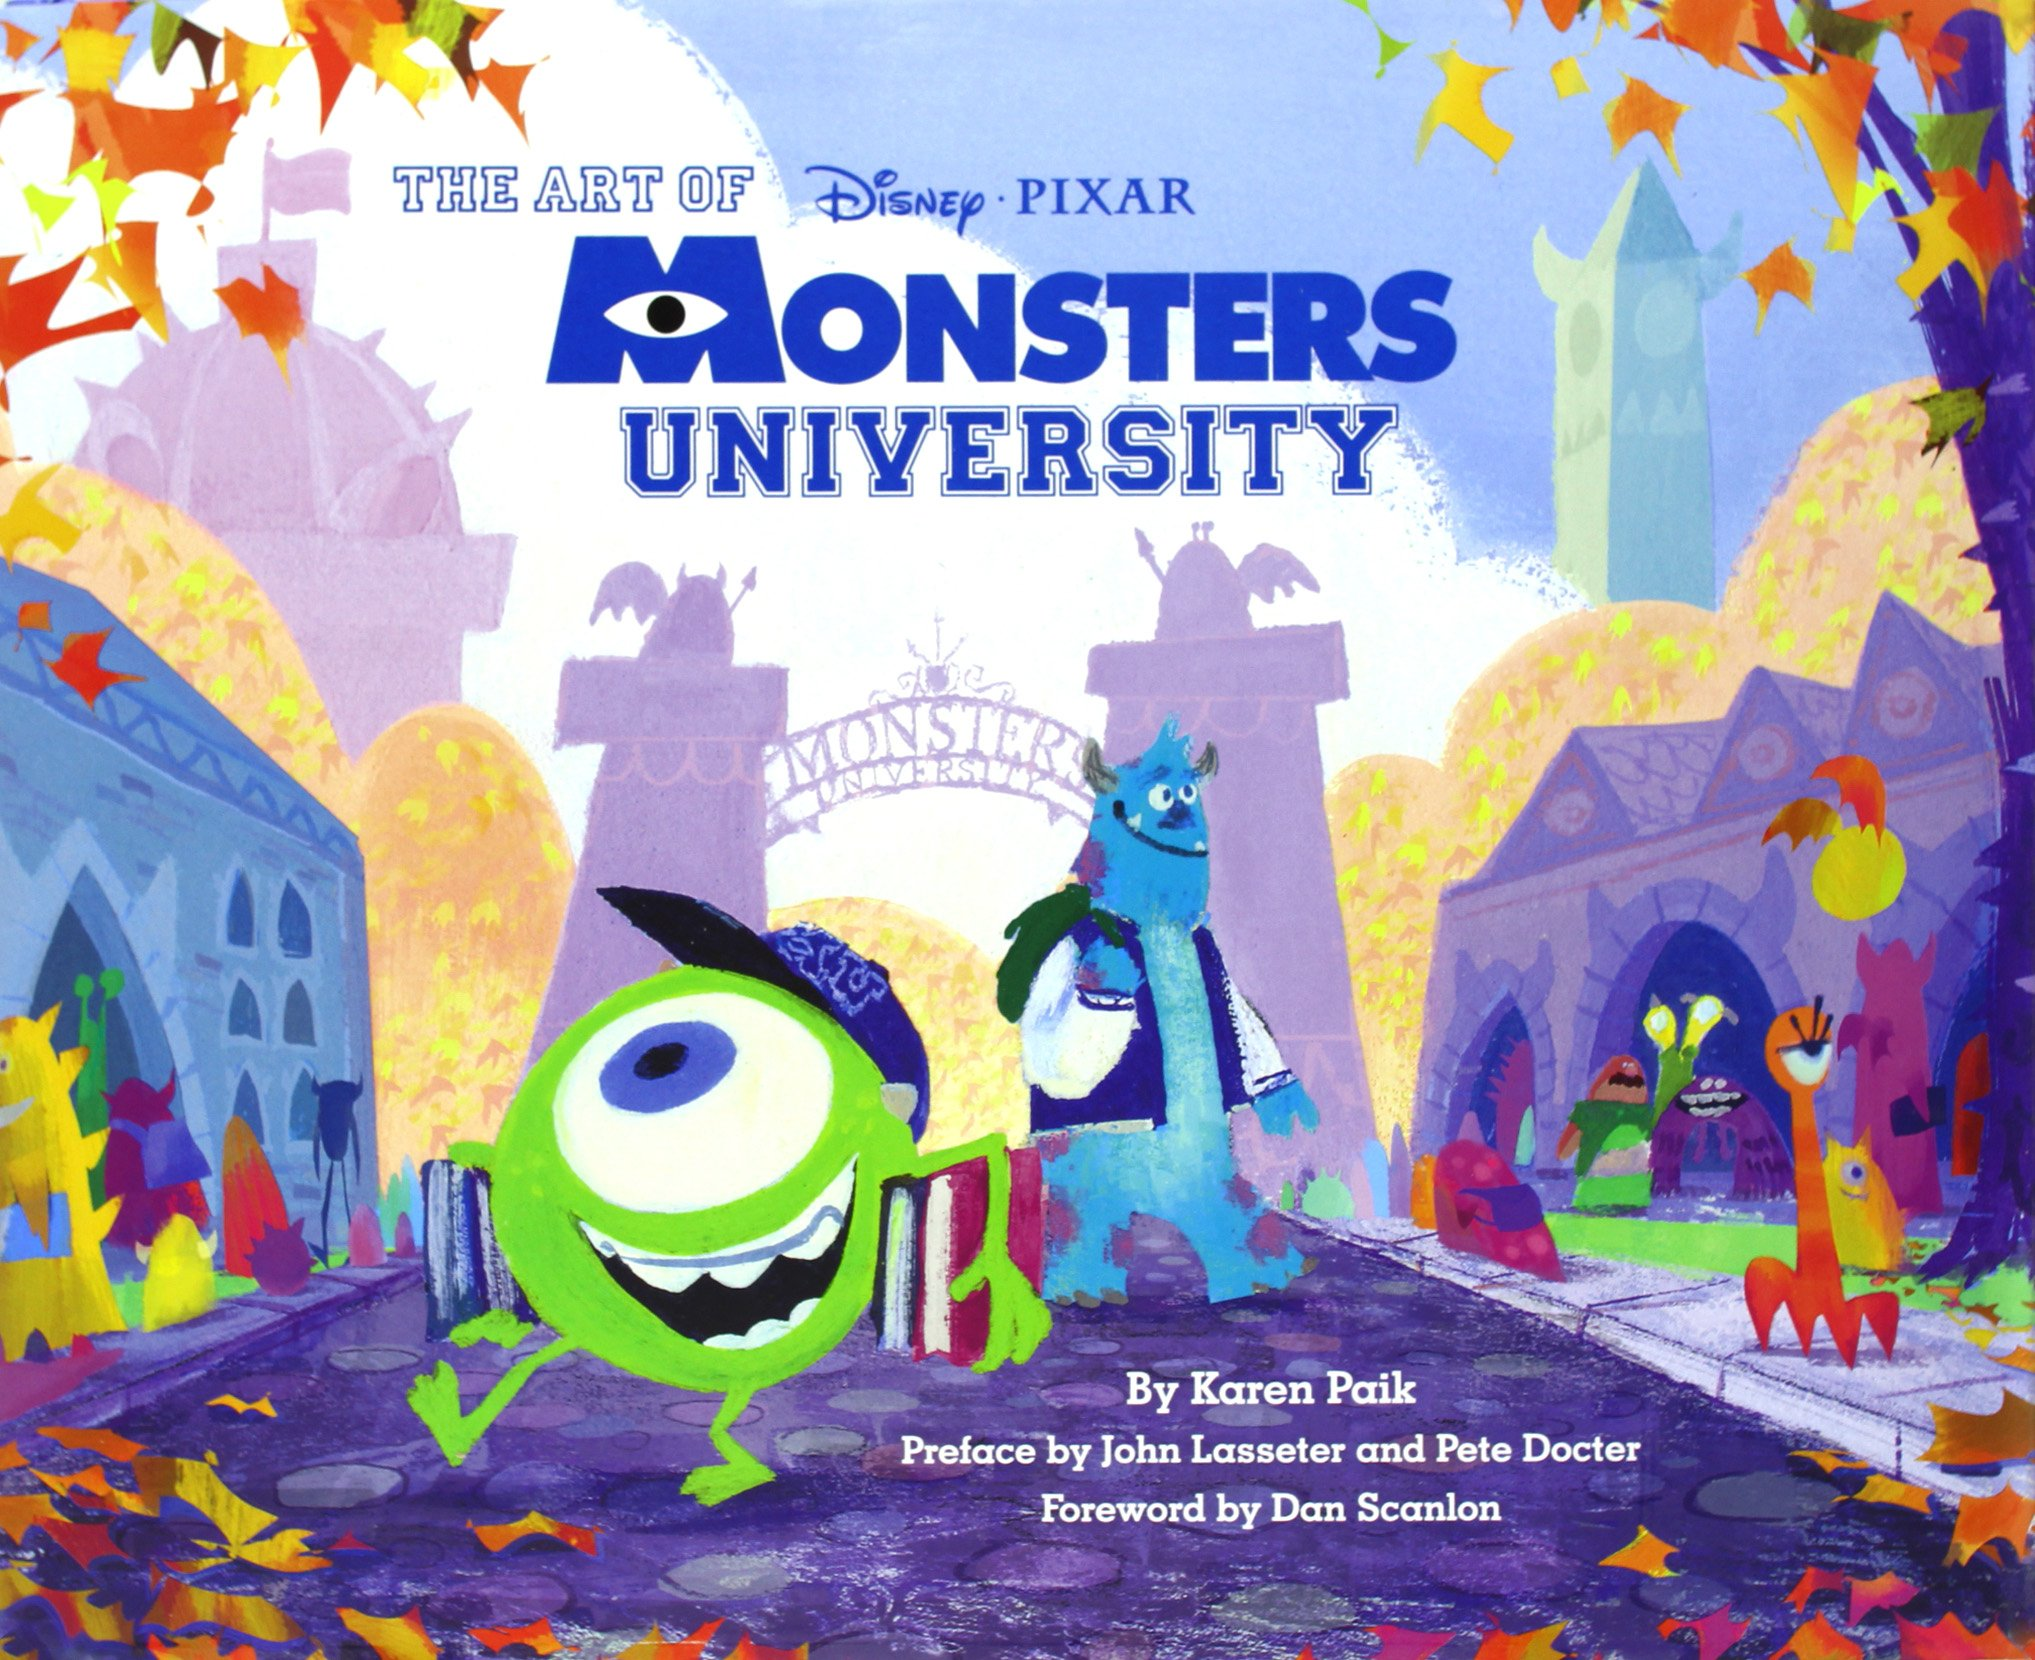 art-of-monsters-university-000